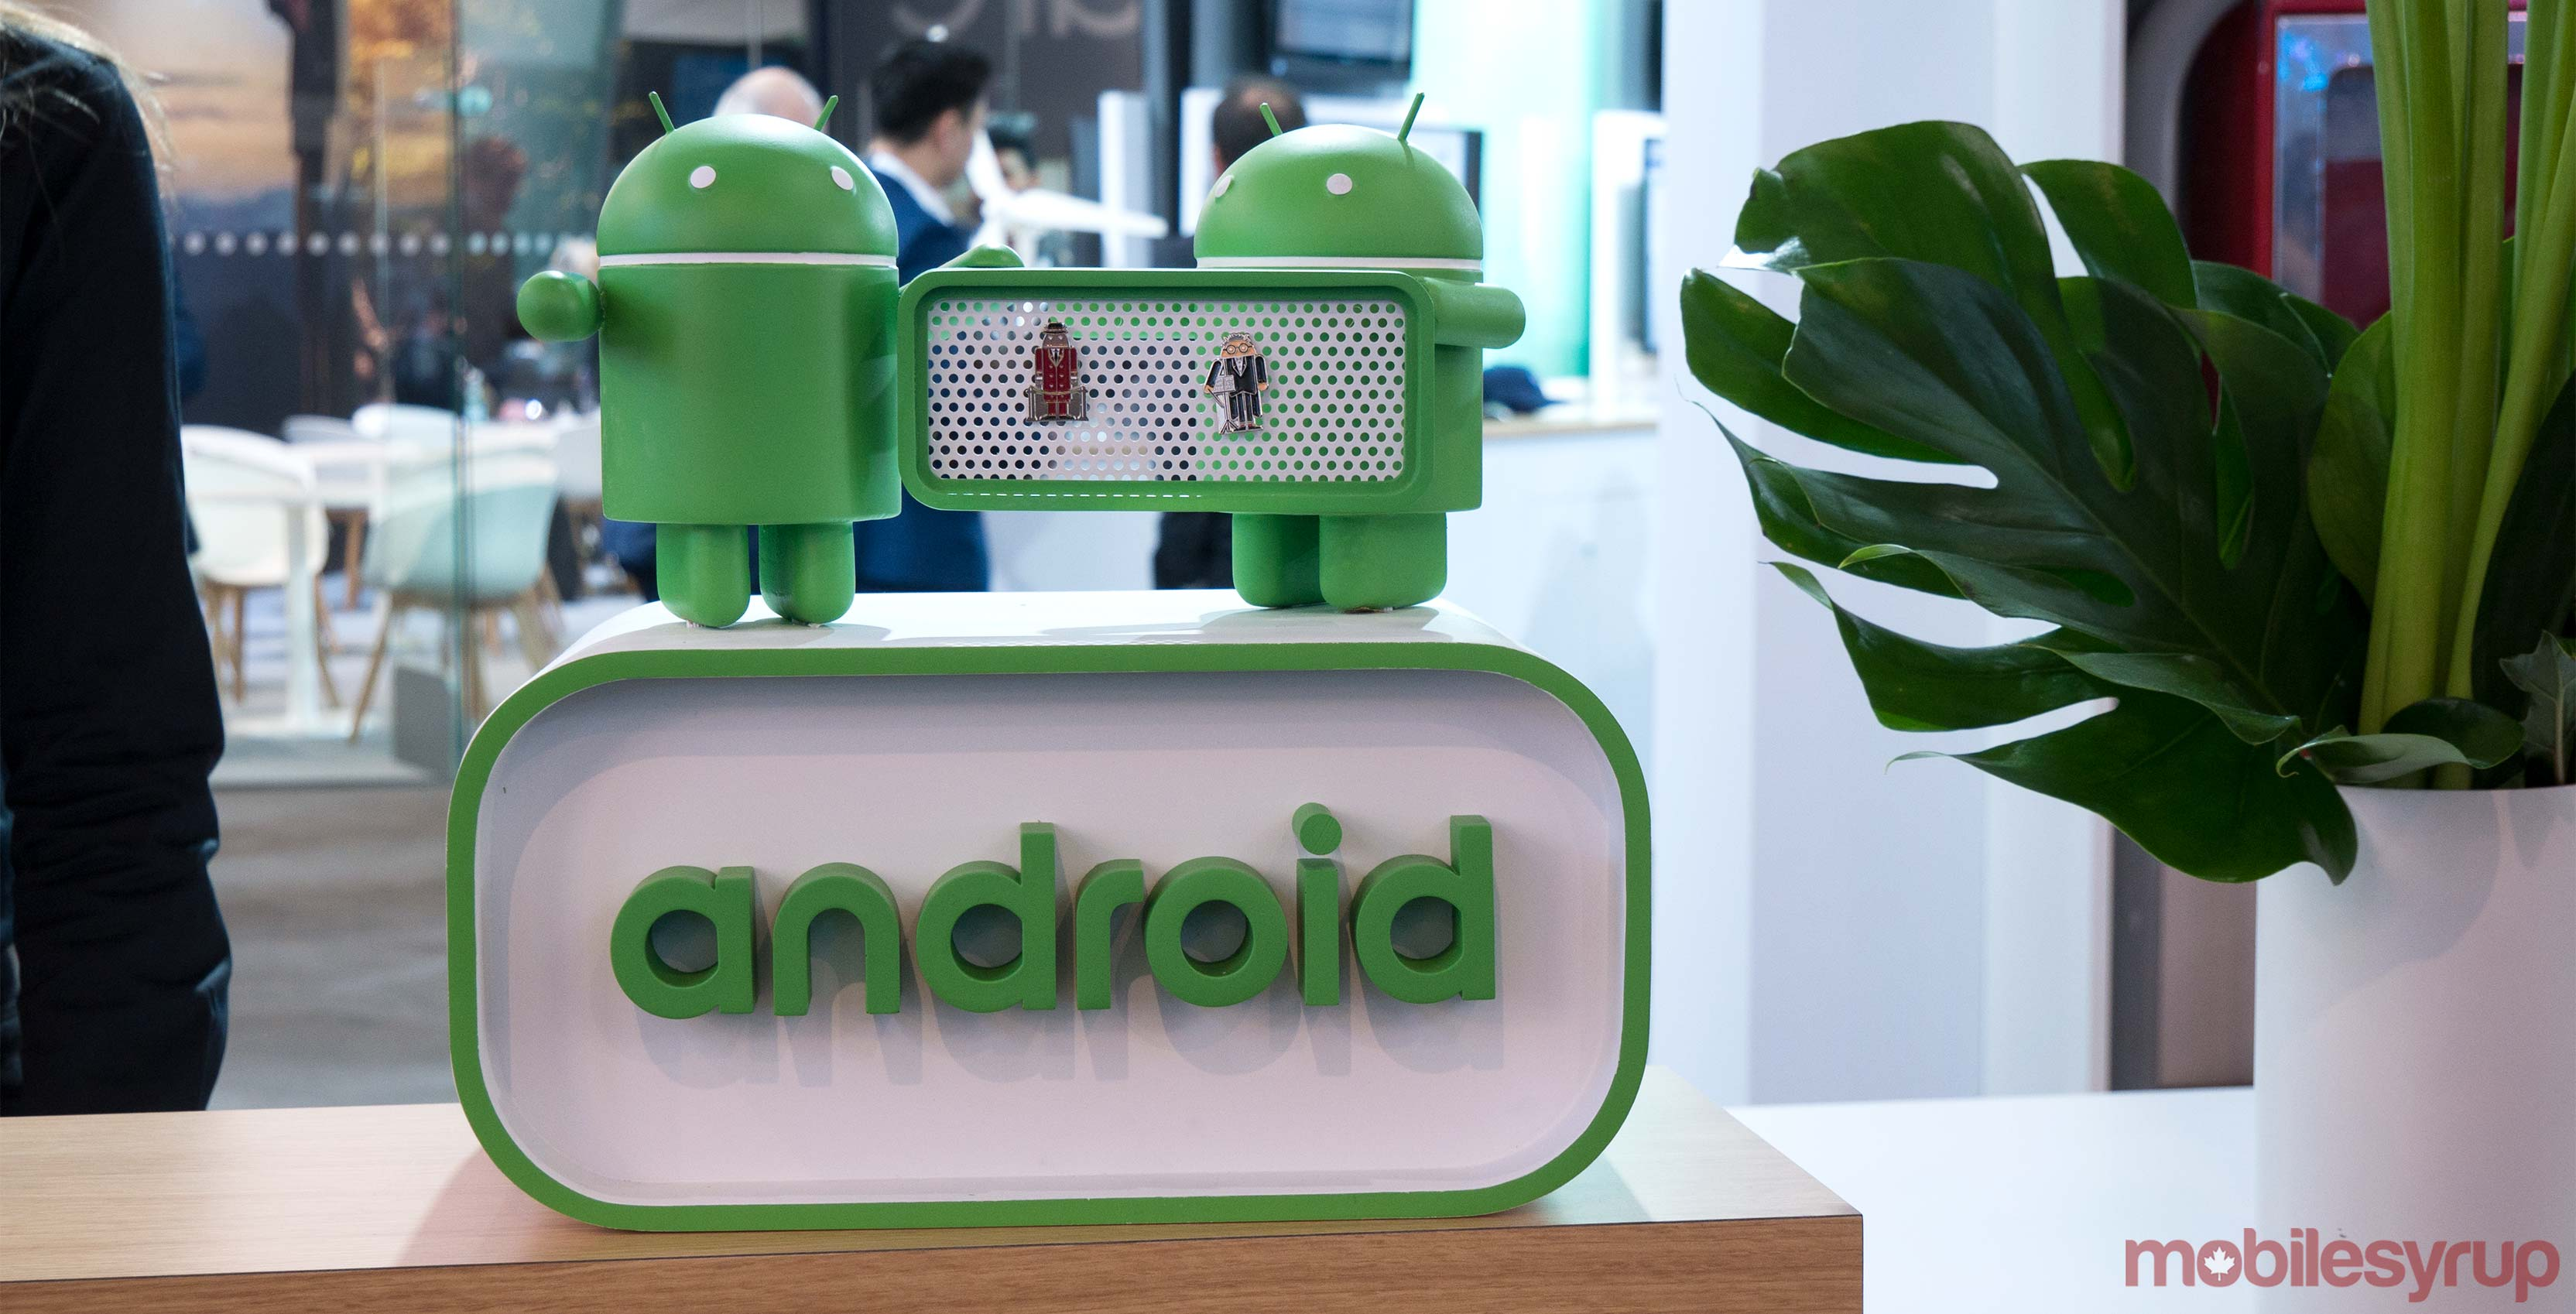 Google says Android is as secure as iOS while remaining more